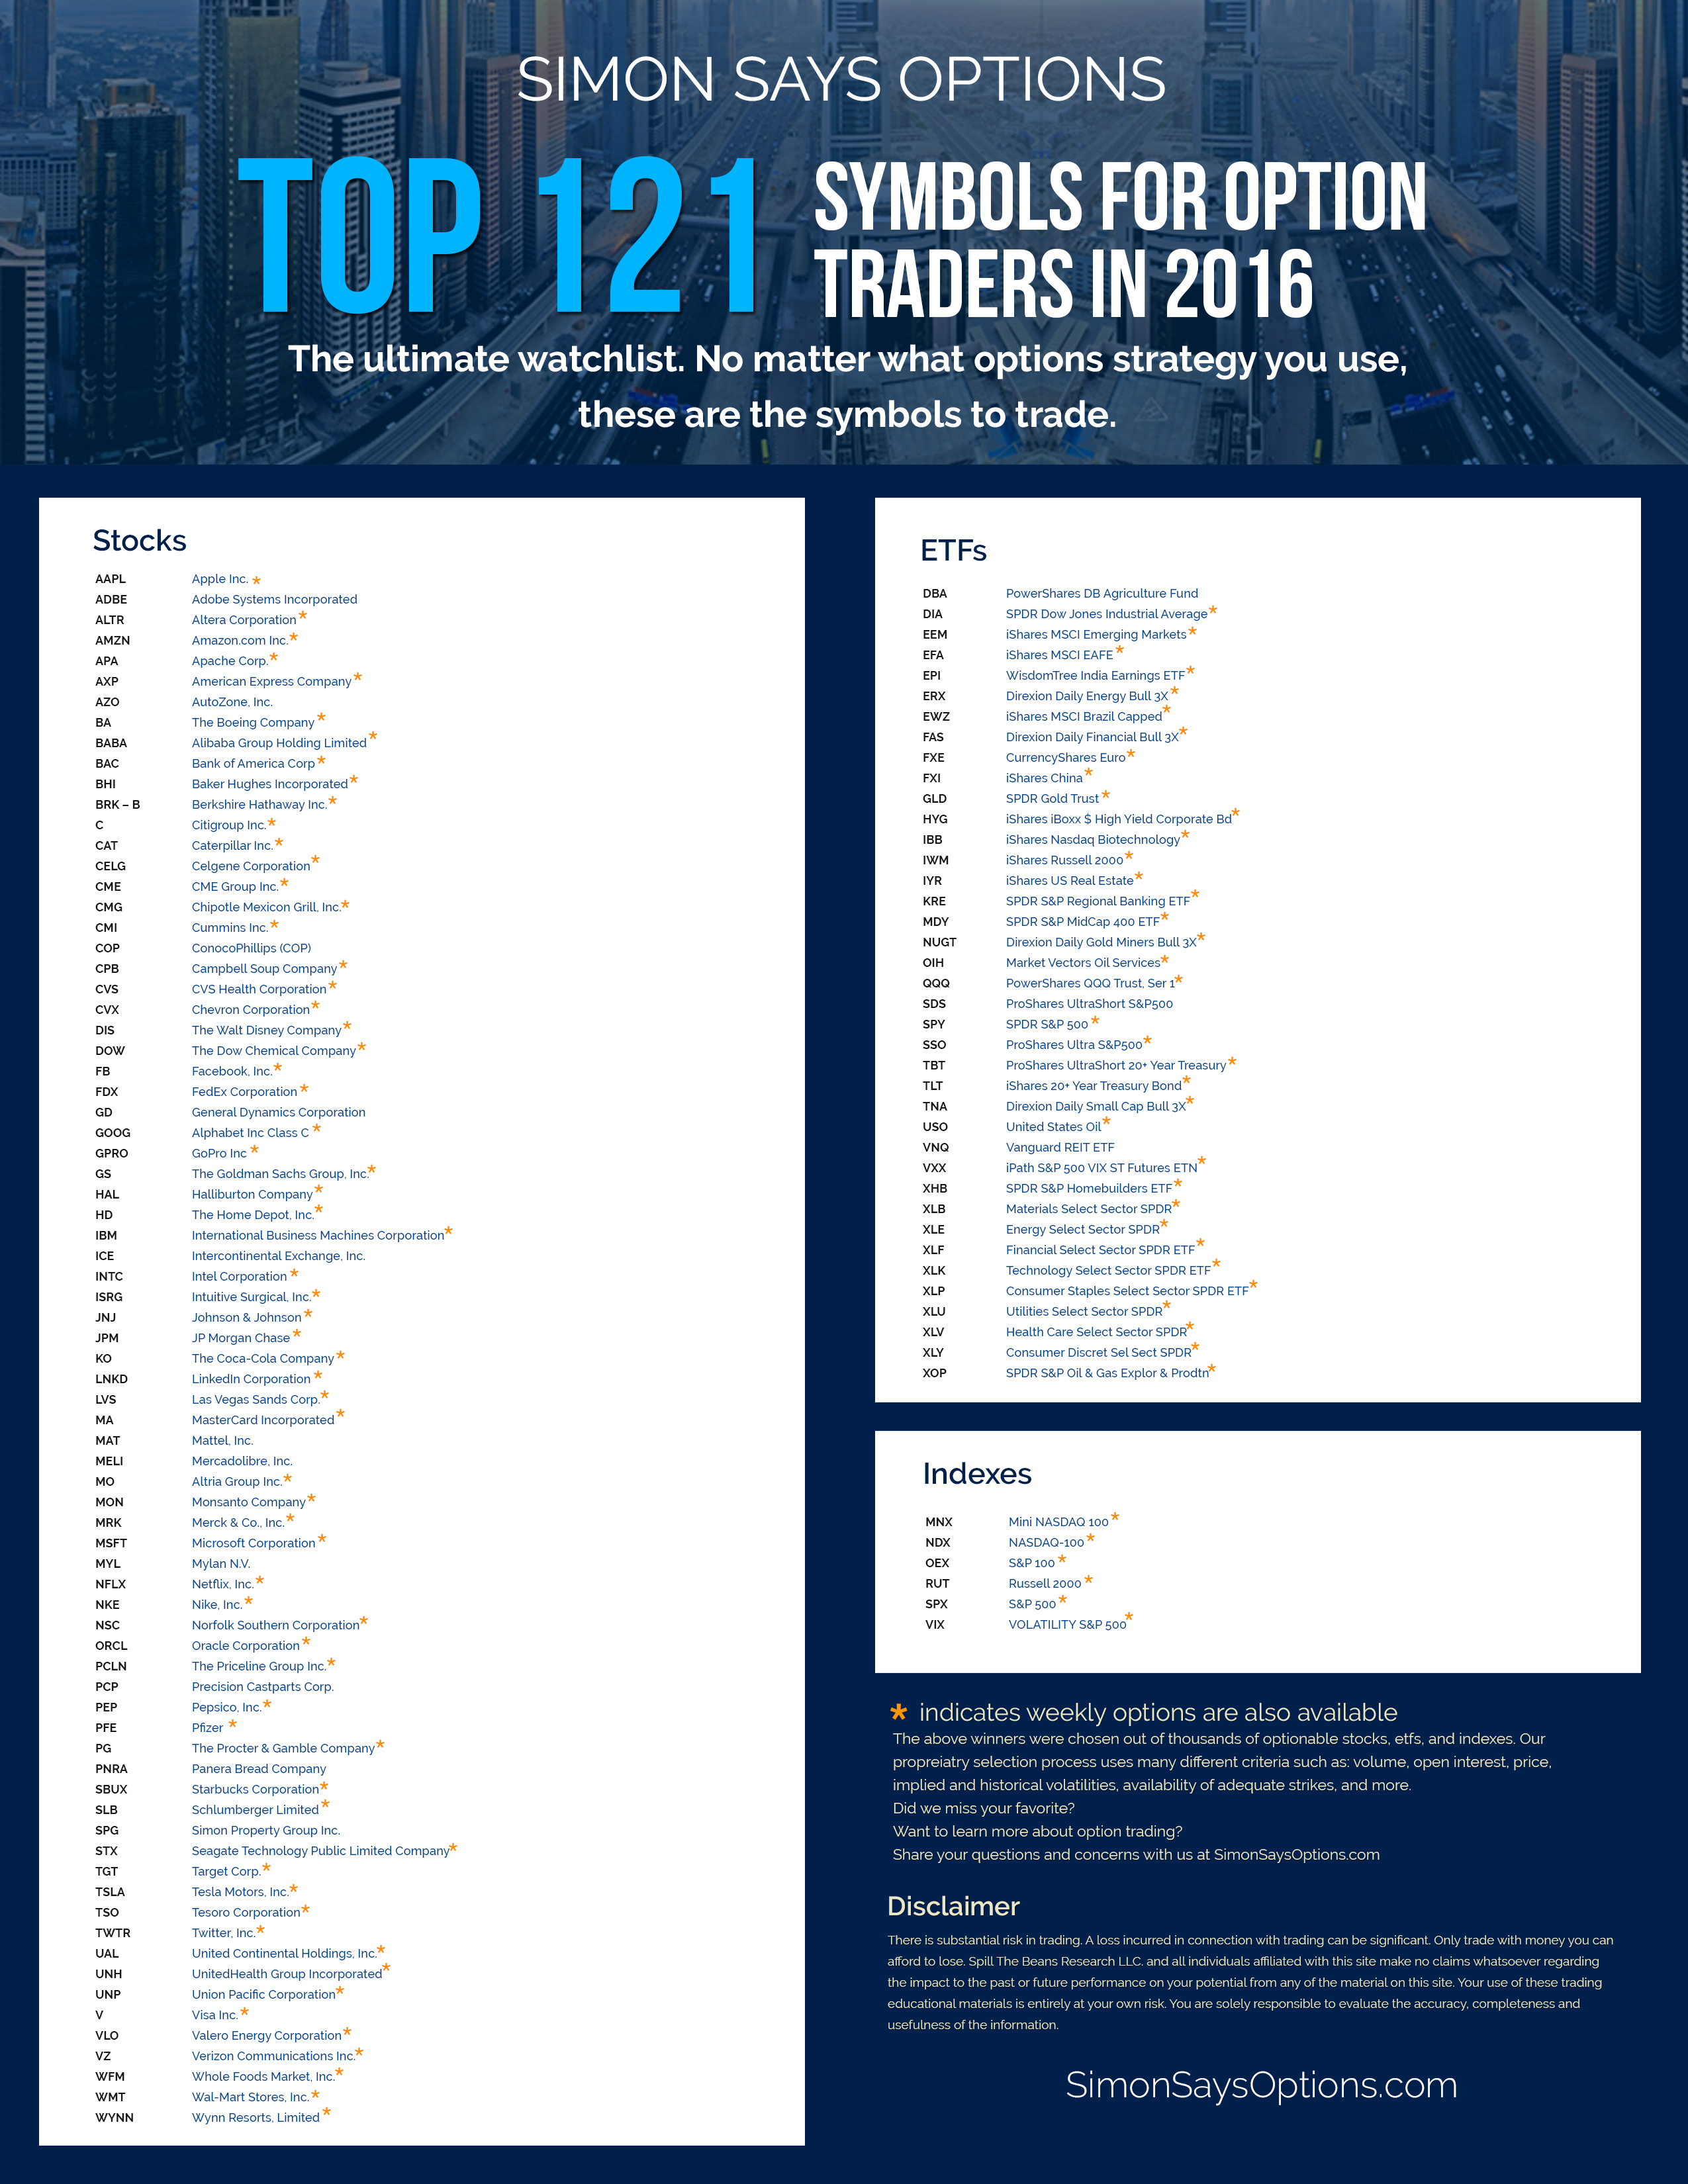 Best optionable stocks to trade